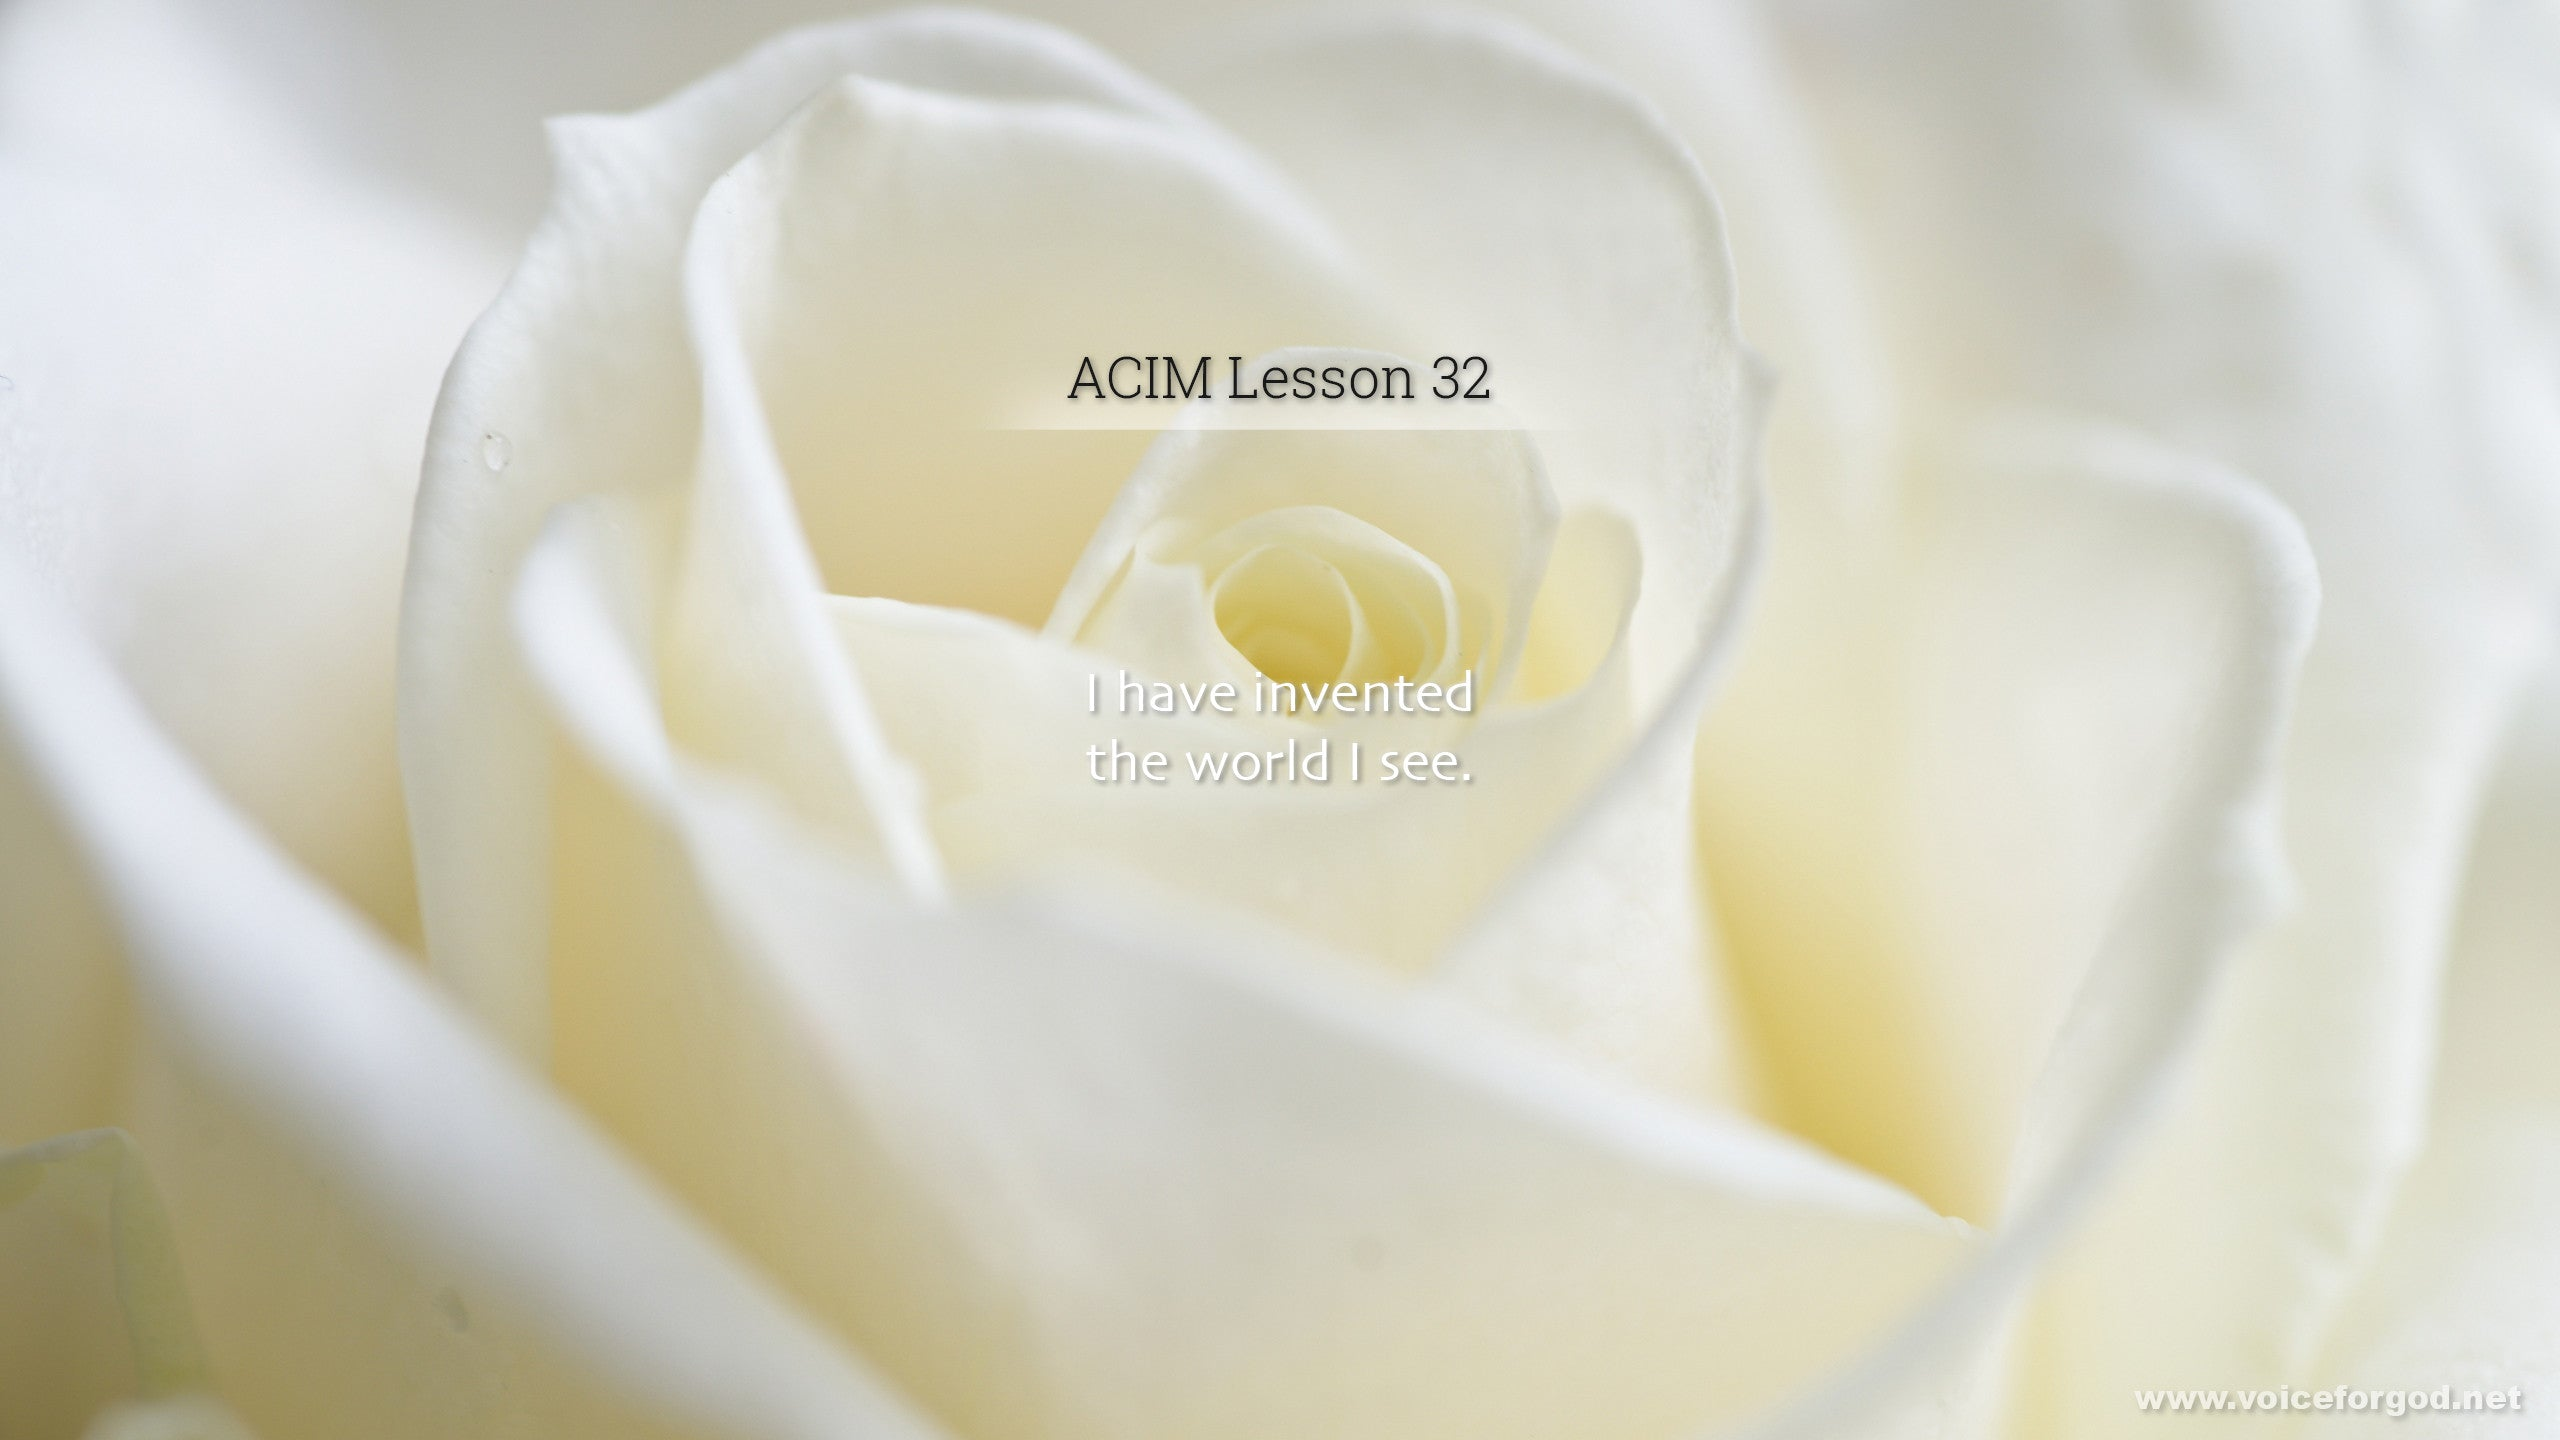 ACIM Lesson 32 - A Course in Miracles Workbook Lesson 32